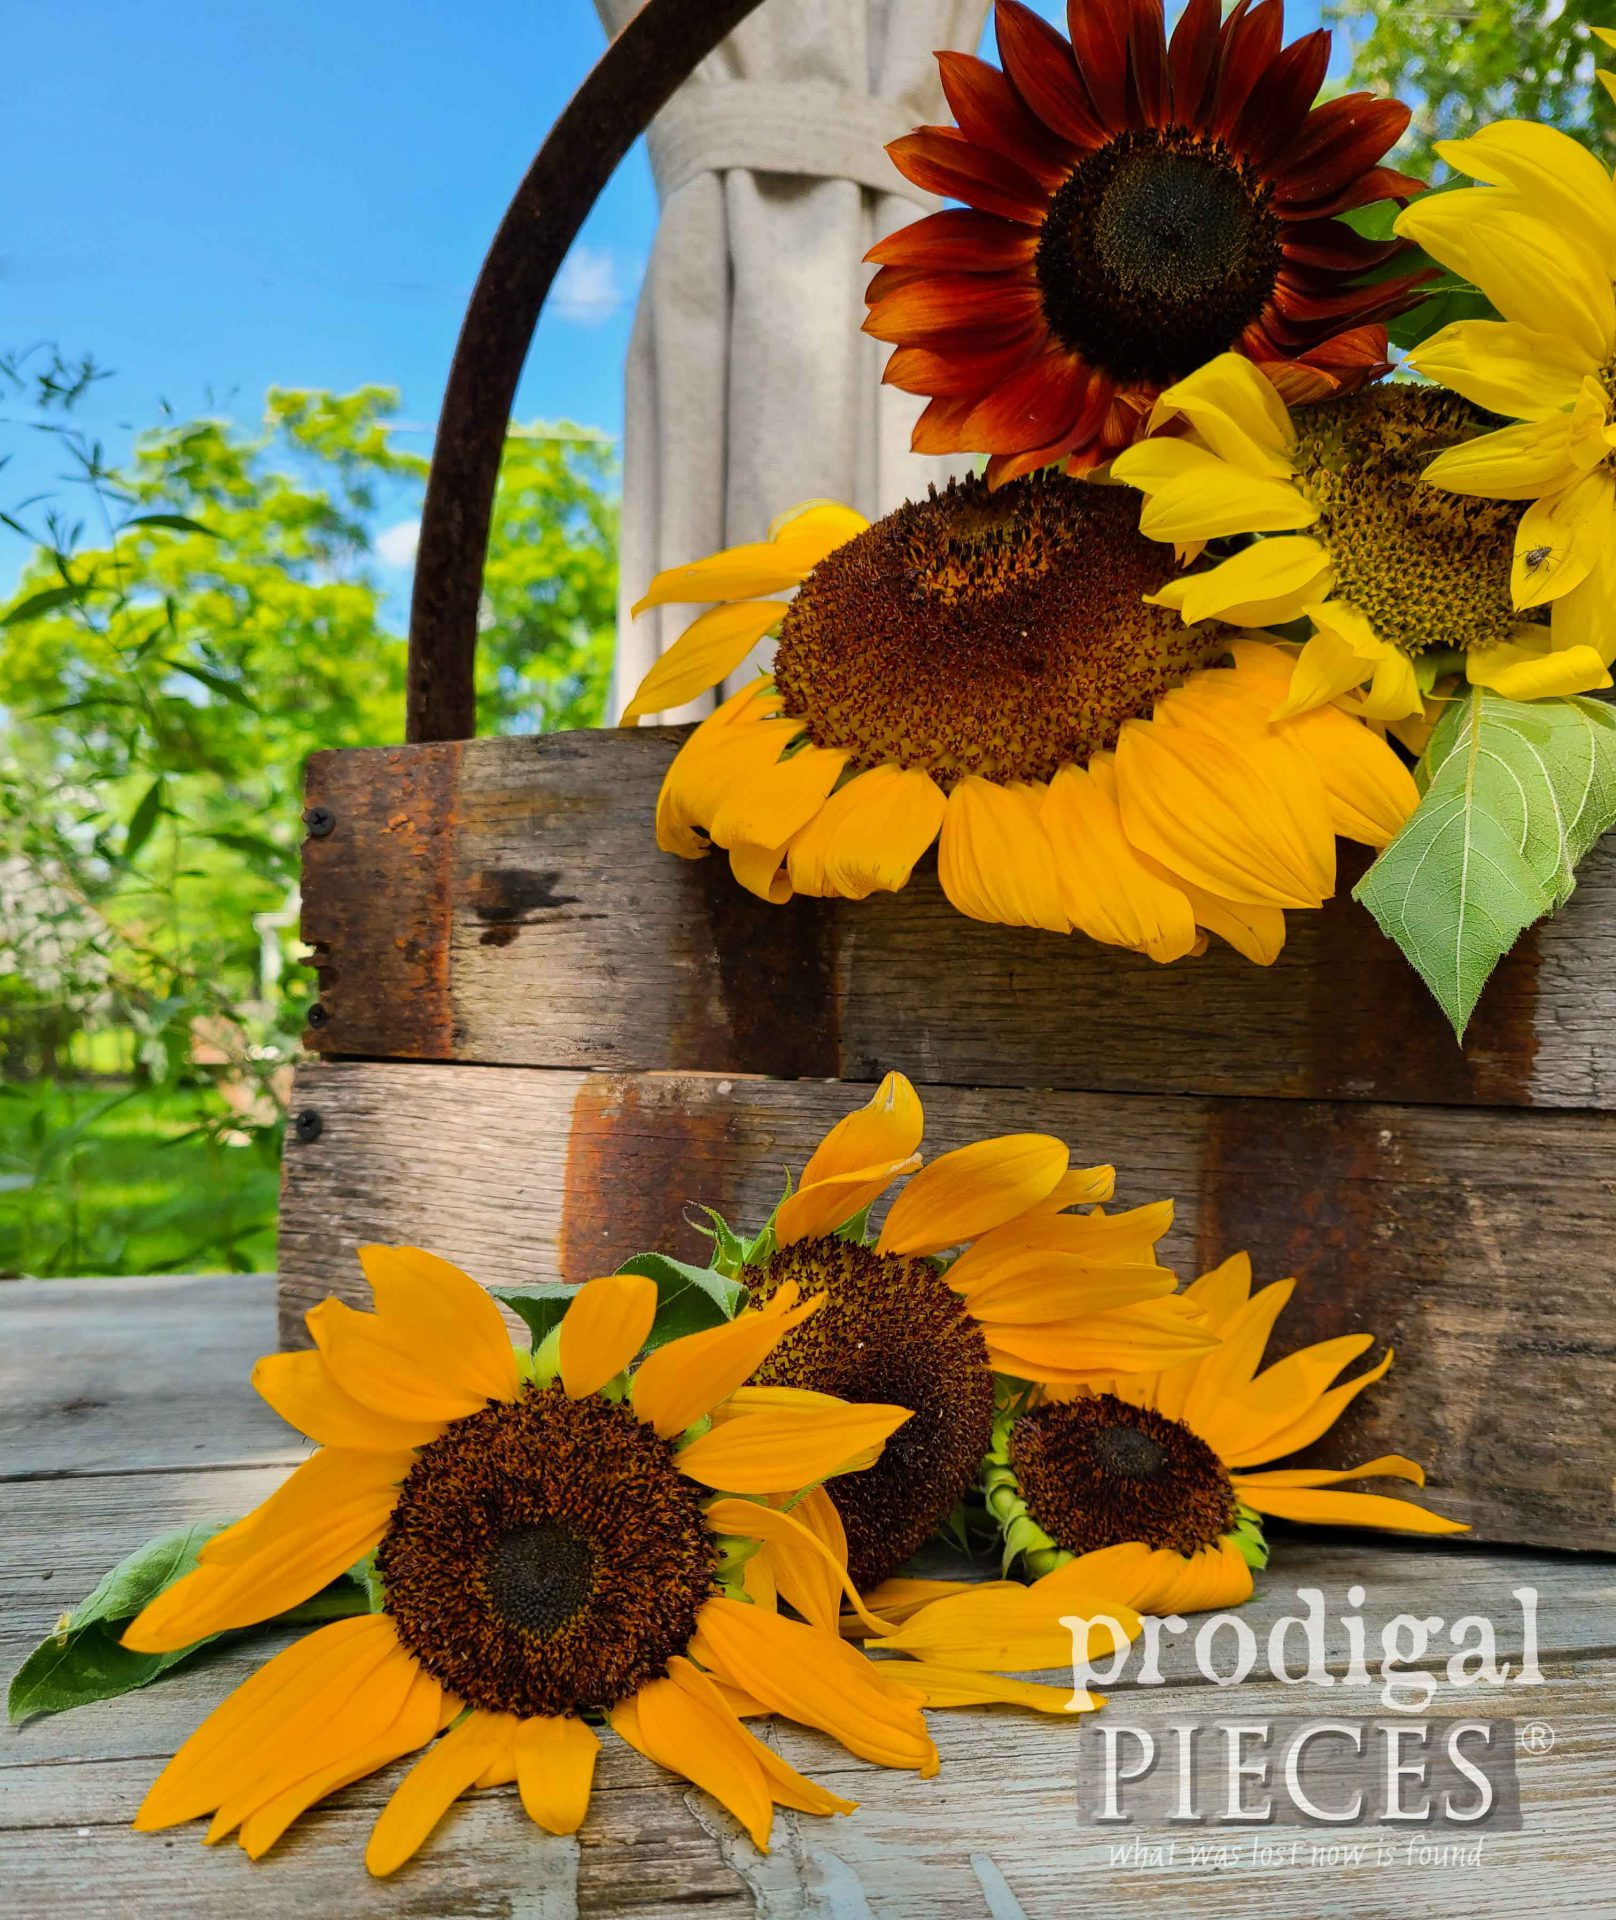 Homegrown sunflowers by Larissa of Prodigal Pieces | prodigalpieces.com #prodigalpieces #sunflowers #garden #home